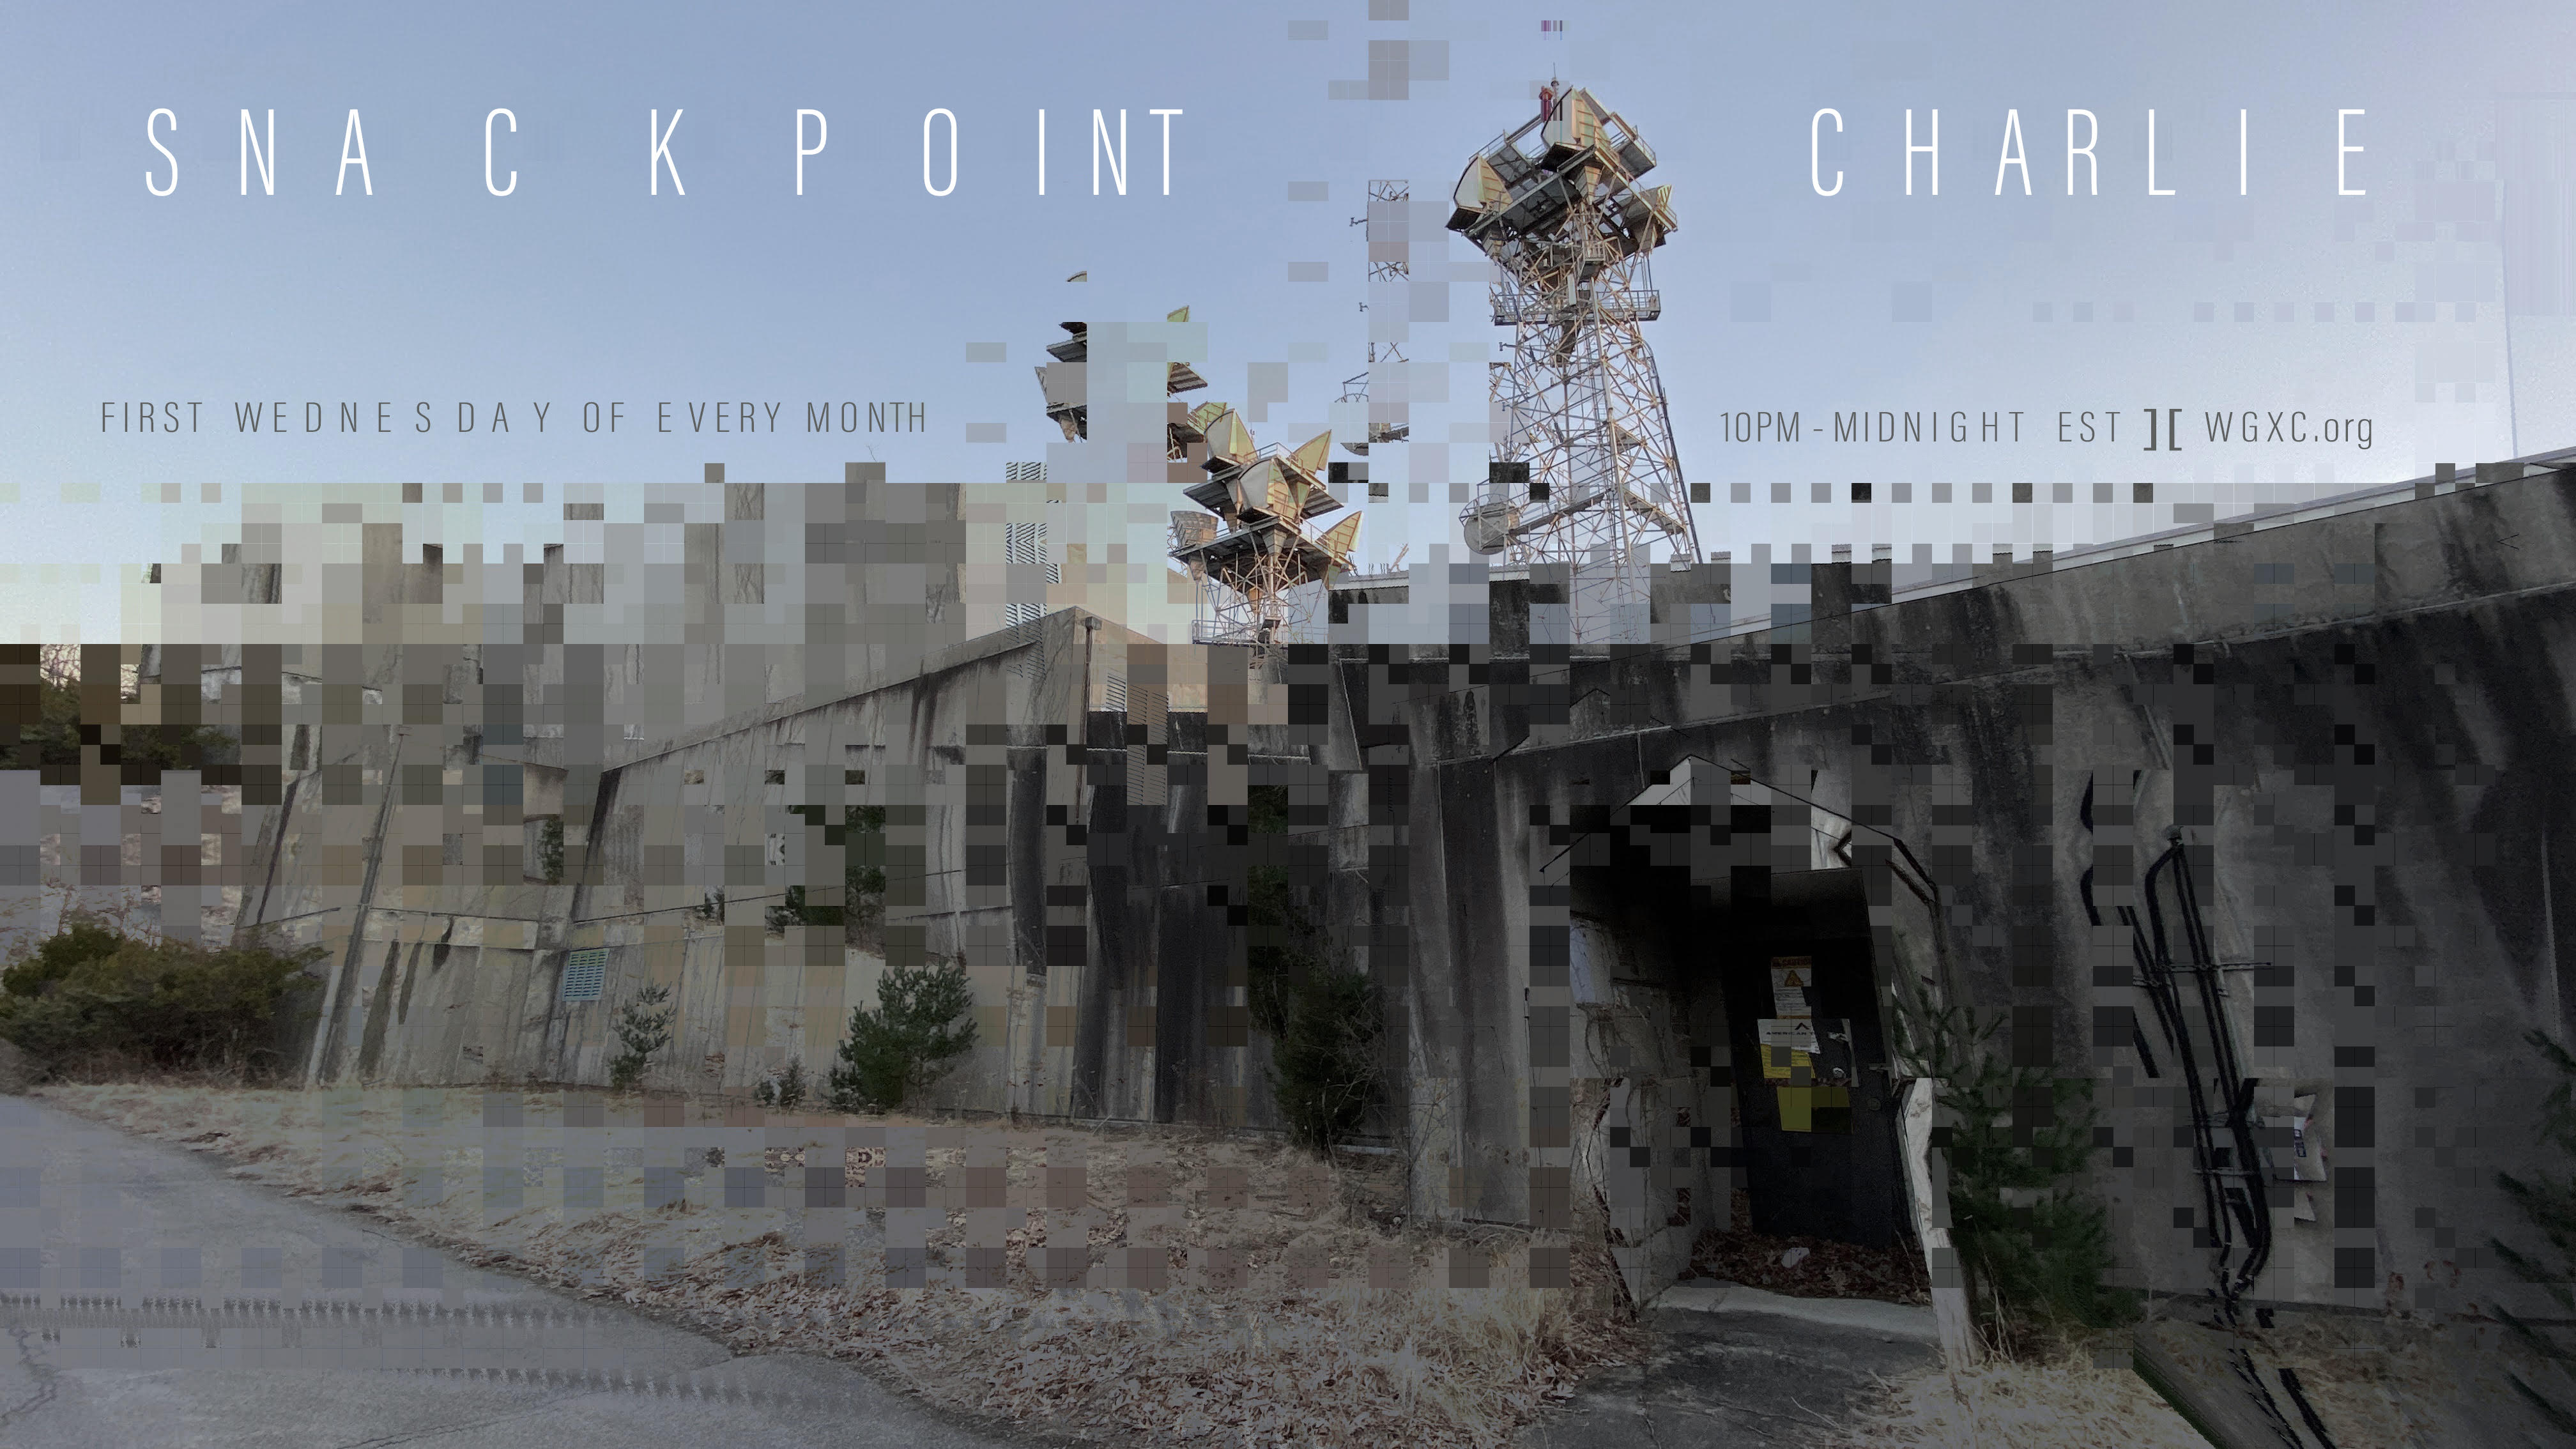 Snackpoint Charlie Show Image